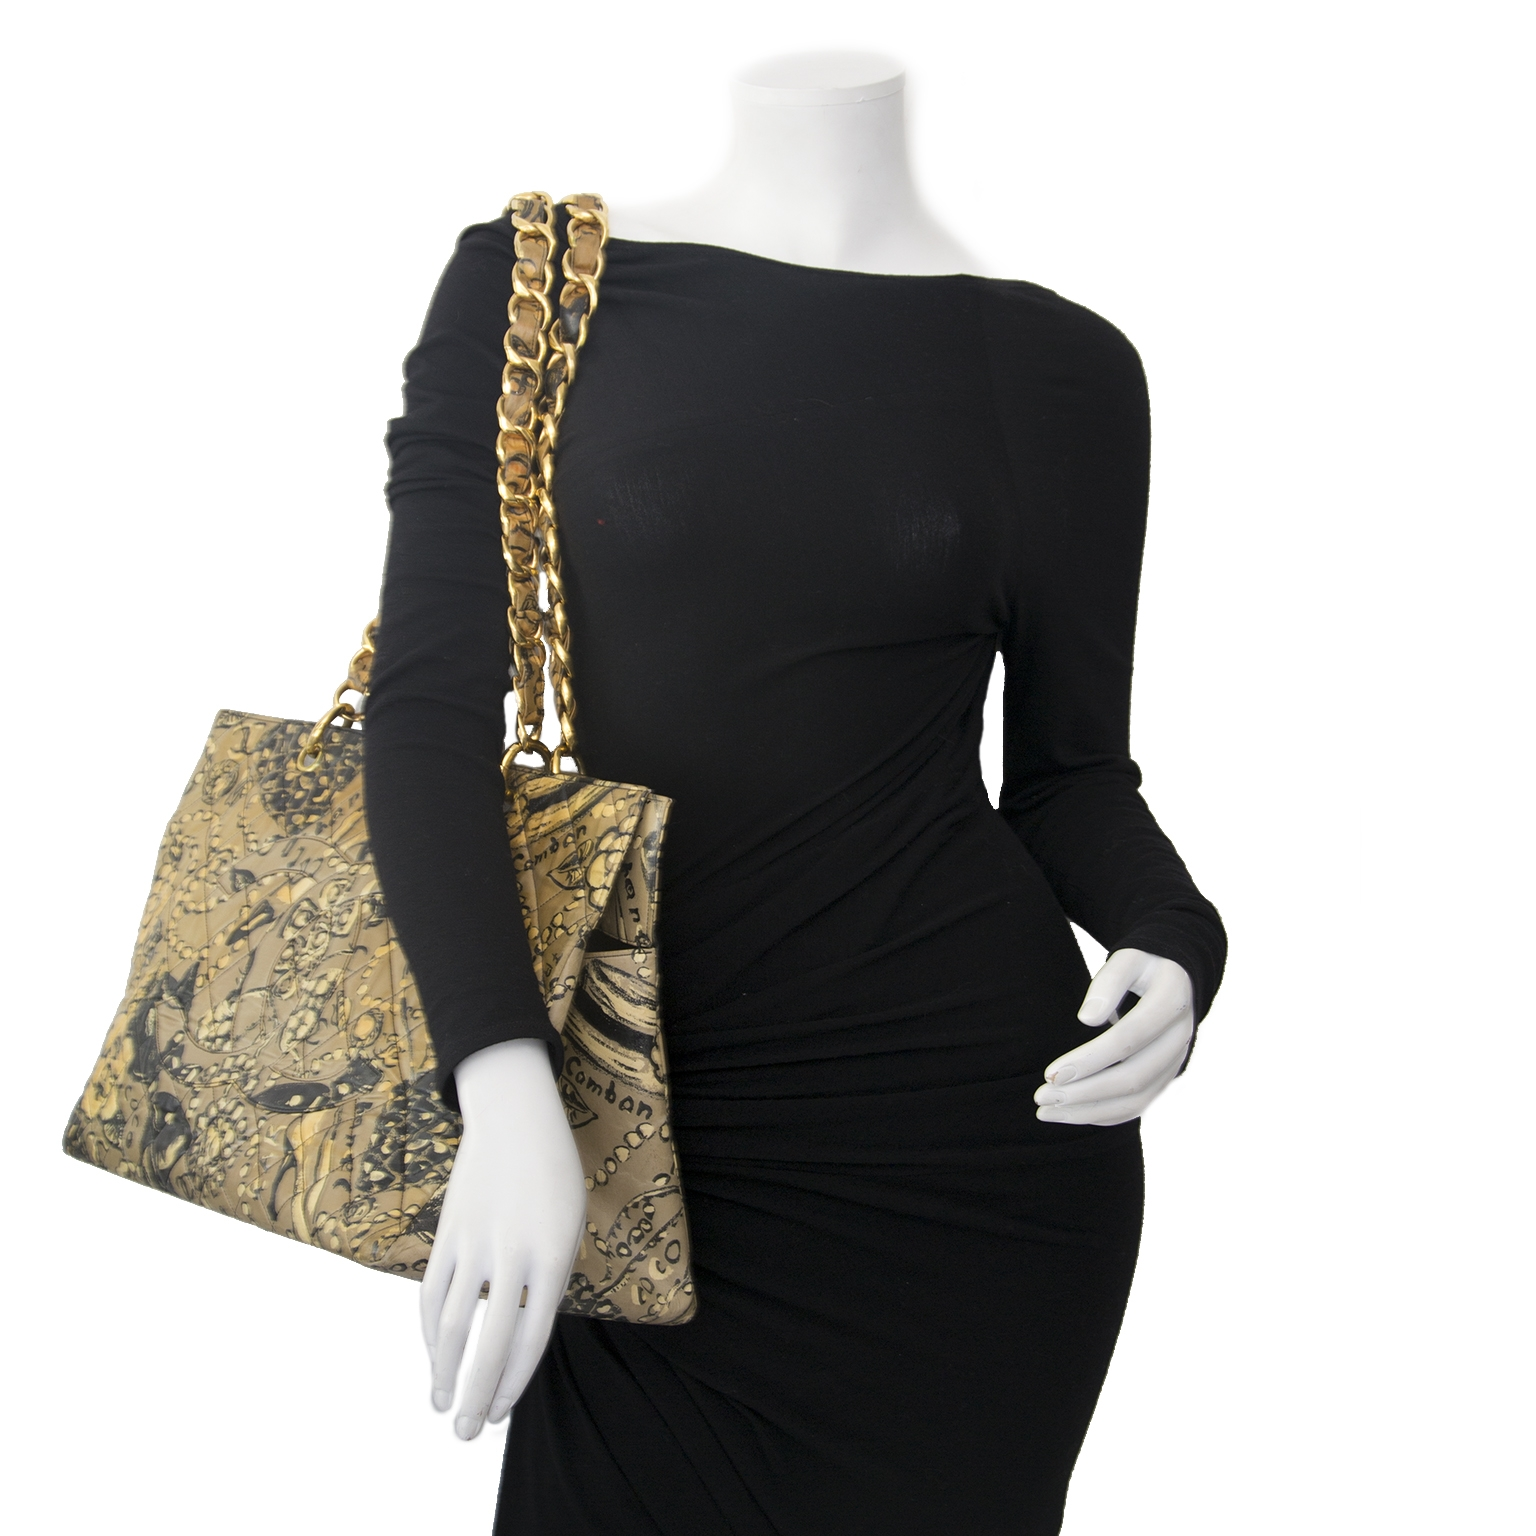 Chanel Mustard & Brown Motive Quilted Tote Bag Buy authentic designer Chanel secondhand bags at Labellov at the best price. Safe and secure shopping. Koop tweedehands authentieke Chanel tassen bij designer webwinkel labellov.